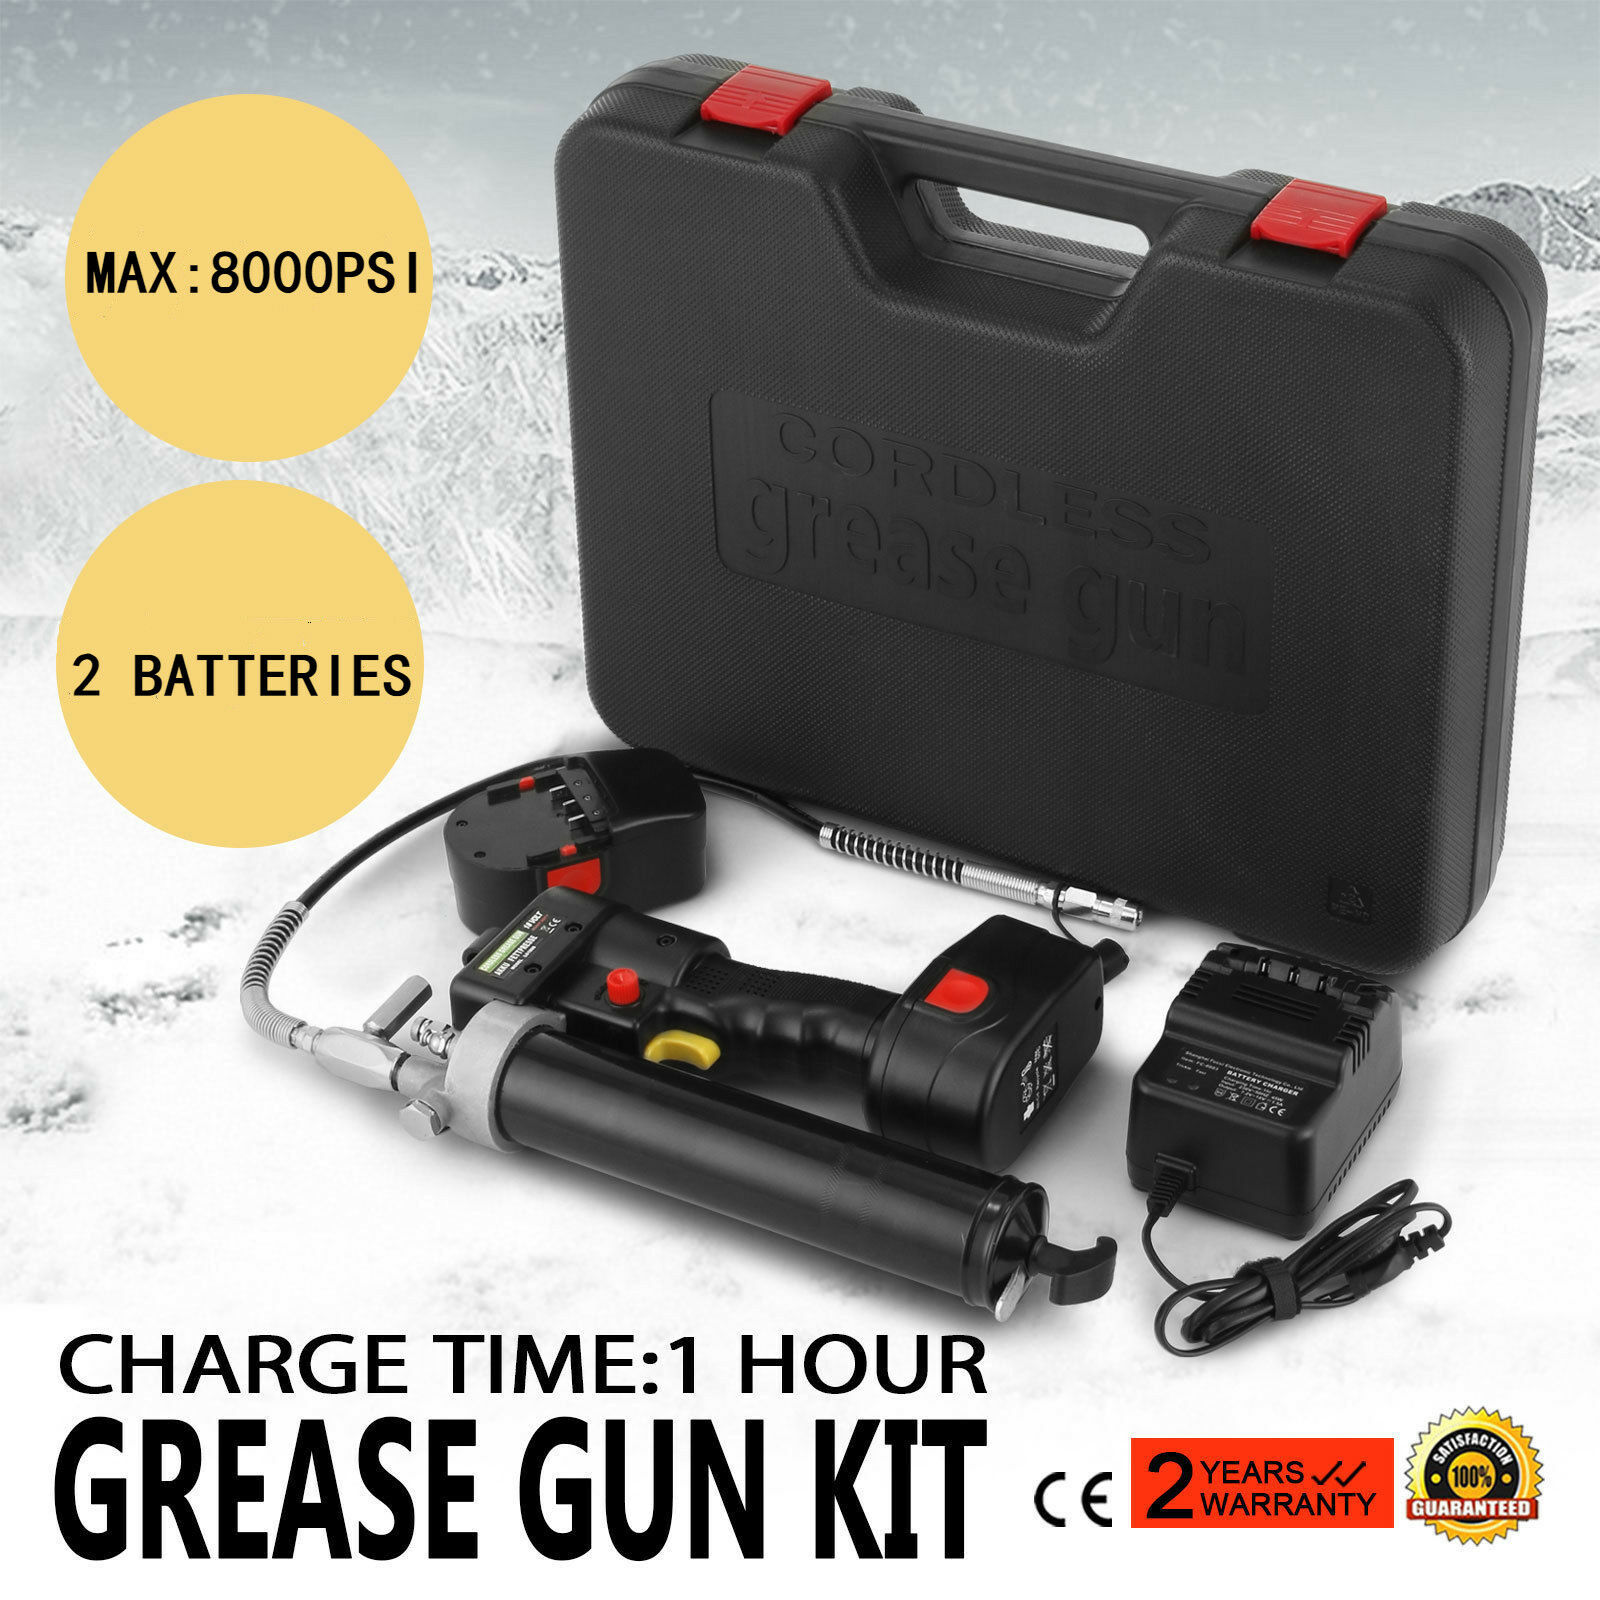 Vevor Electrical Grease Gun Cordless Battery 18V 107cm 8000PSI Heavy + 2 Batteries LCD Grease Level